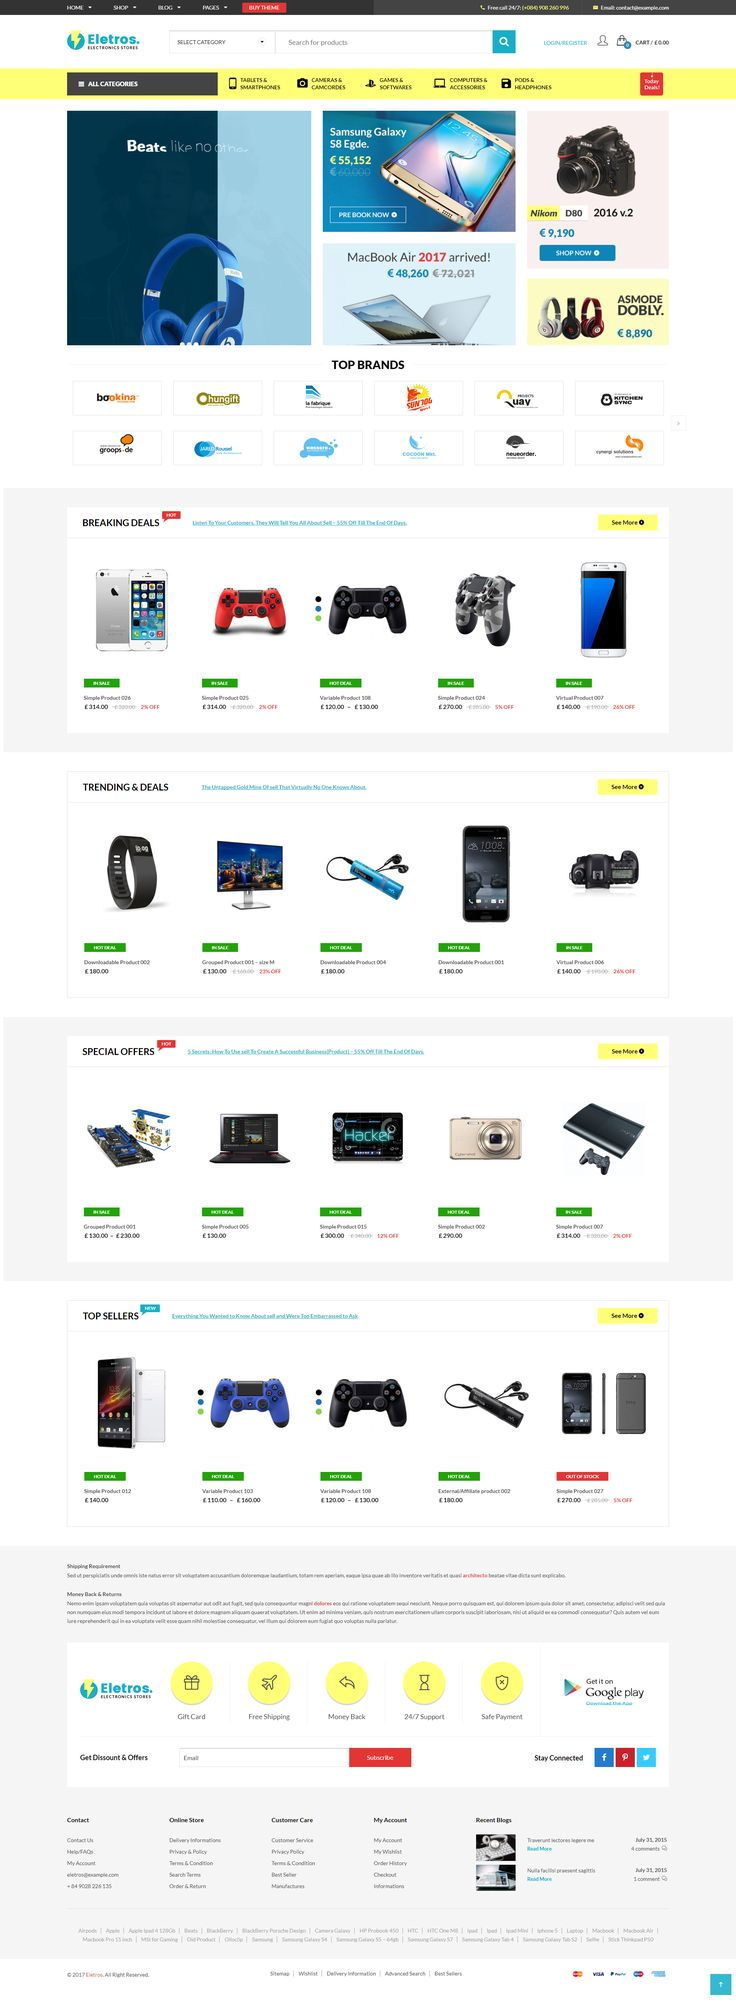 Heavy, bulky electronic stores of the past are gone forever. From now on you can build a cutting-edge eCommerce shop without a hassle; and sell computers, smartphones, tablets, affiliate #websites and anything else with the help of this responsive VG Eletros – Electronics Store WooCommerce Theme with clean multipurpose design. It is built for #WordPress and #WooCommerce, which means it is much more than just a regular #eCommerce template. #theme